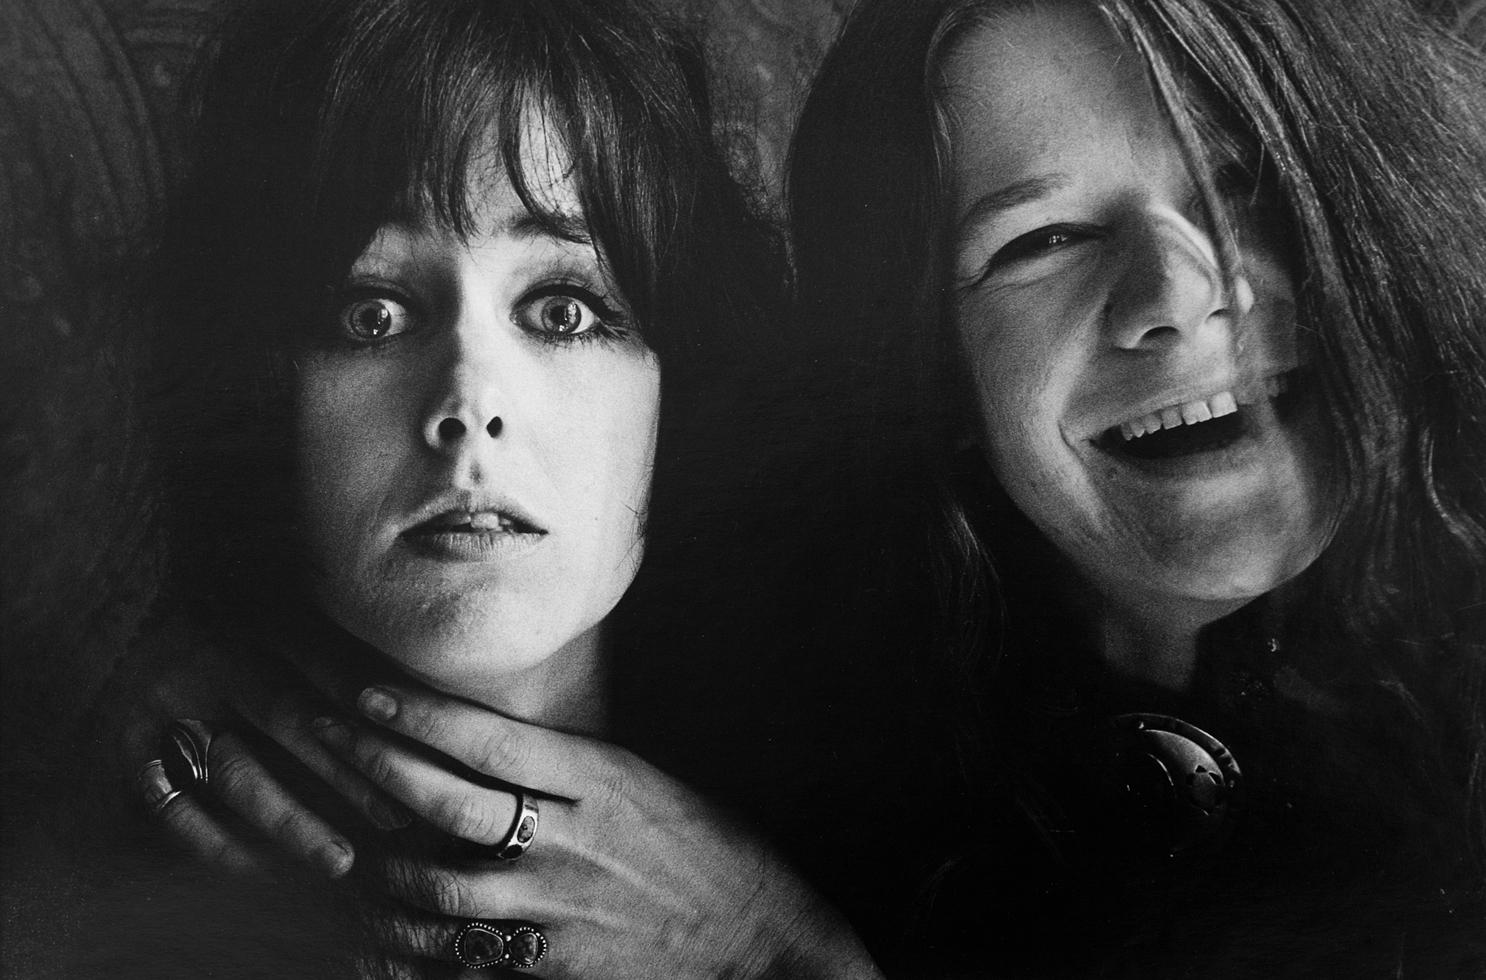 Grace Slick and Janis Joplin, San Francisco, CA 1967 | Orphaned Images